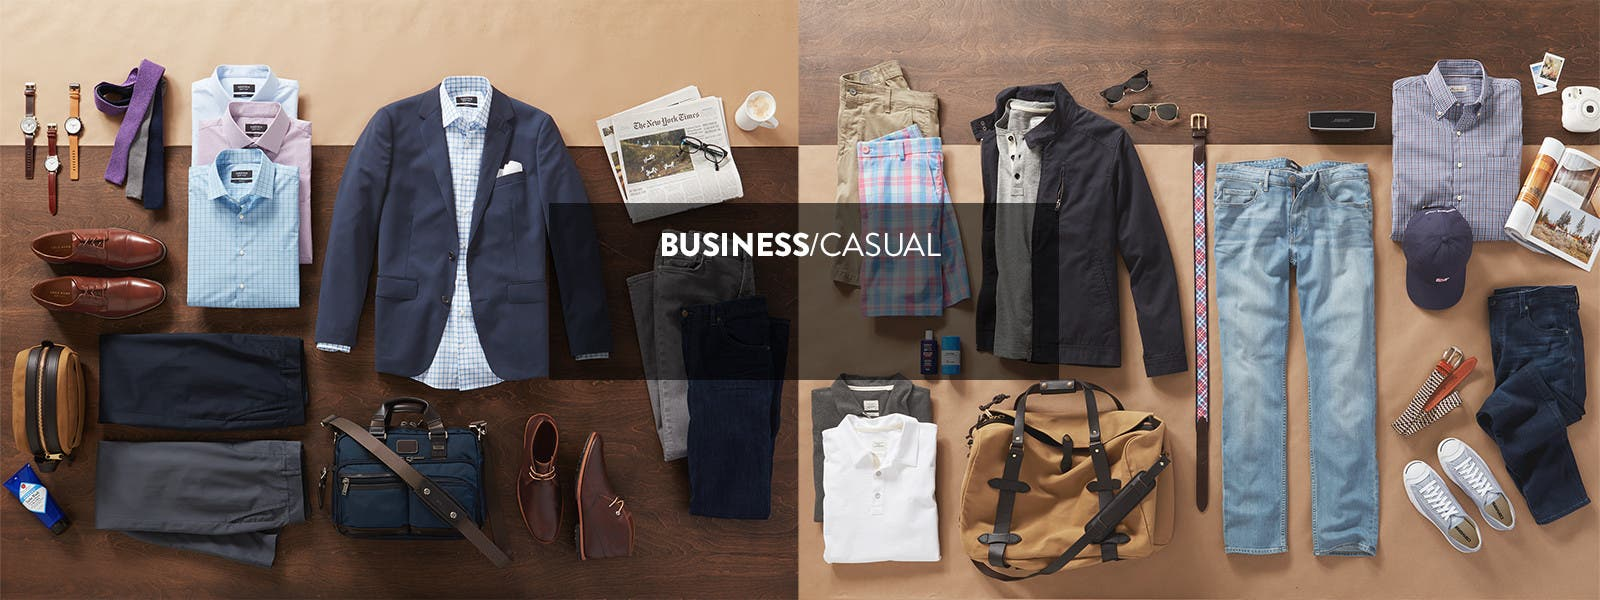 Business casual clothing for men.